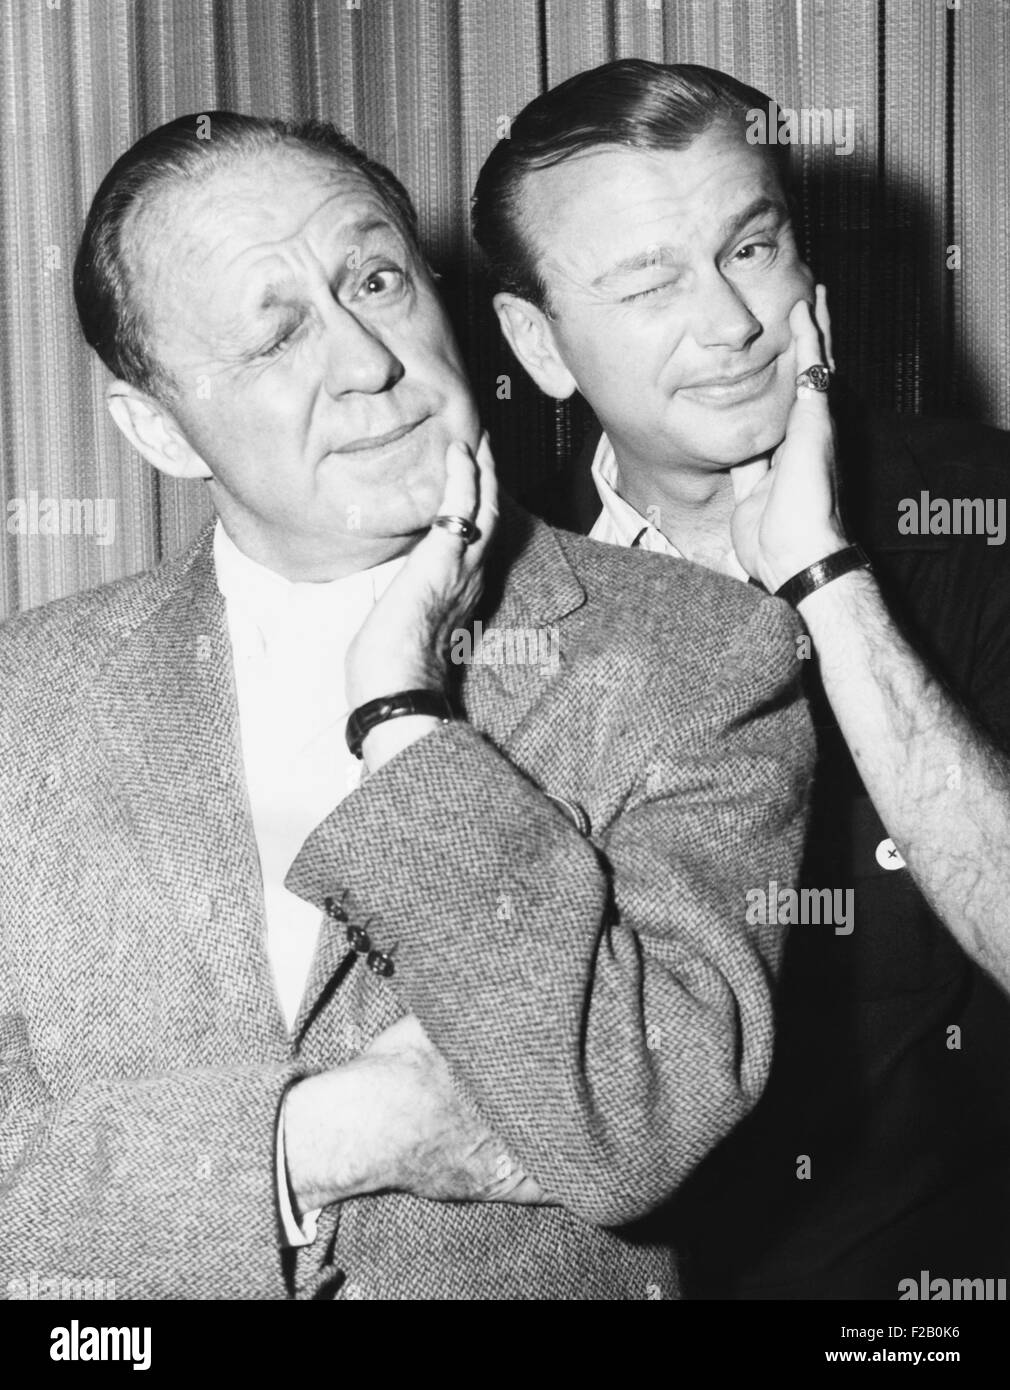 Jack Benny and Jack Parr pose with similar facial expressions, Dec. 2, 1959. Paar's career took a leap when - Stock Image